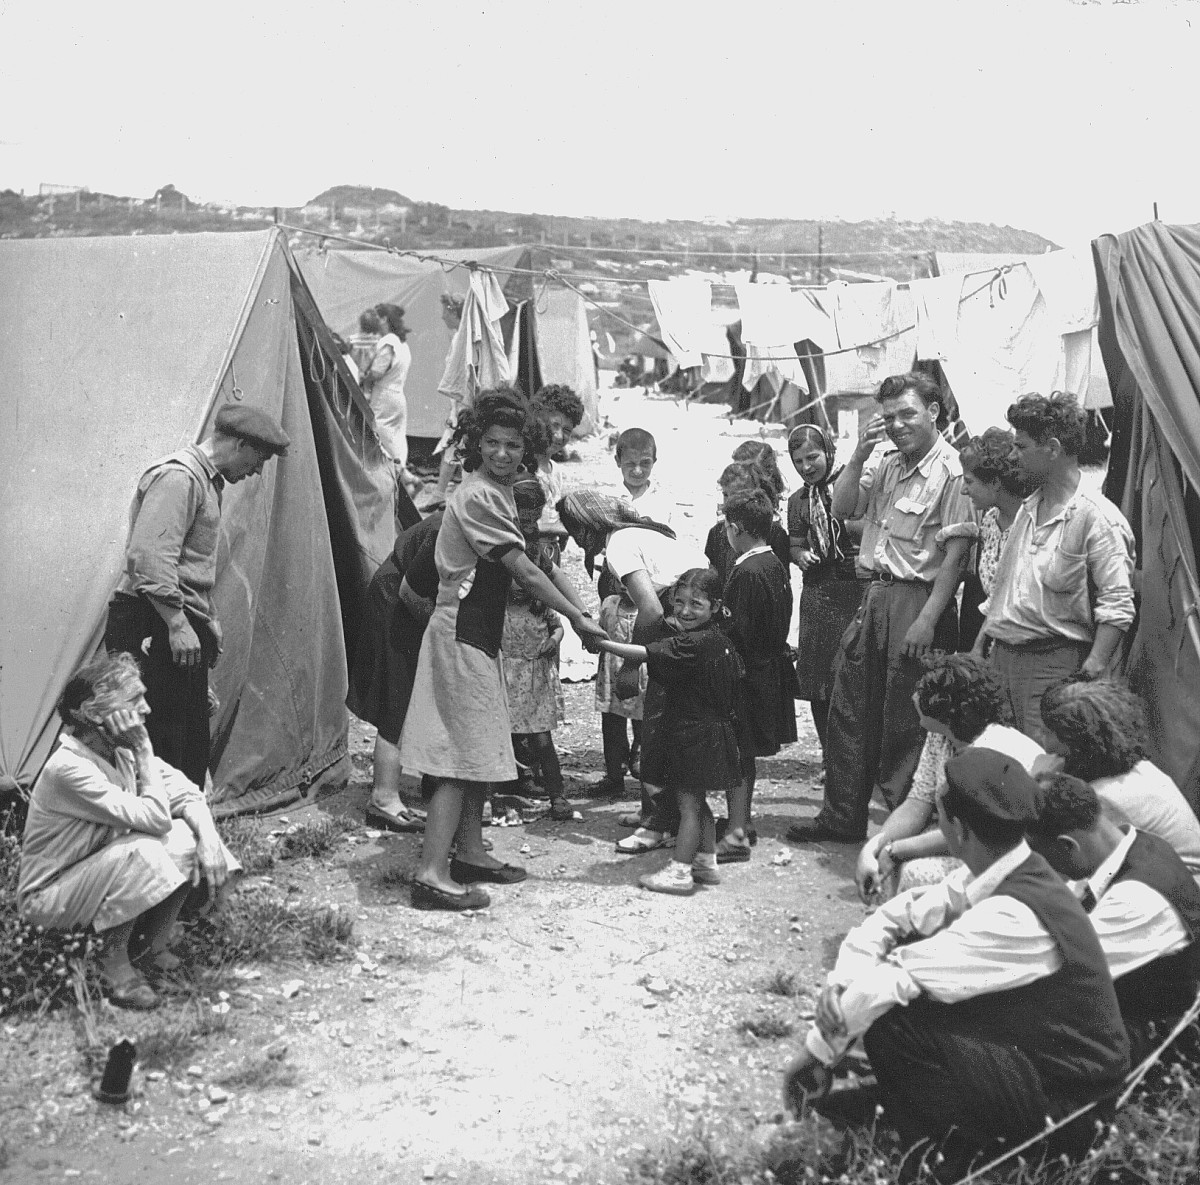 Jewish Refugees from Arab Lands in Israel, 1950